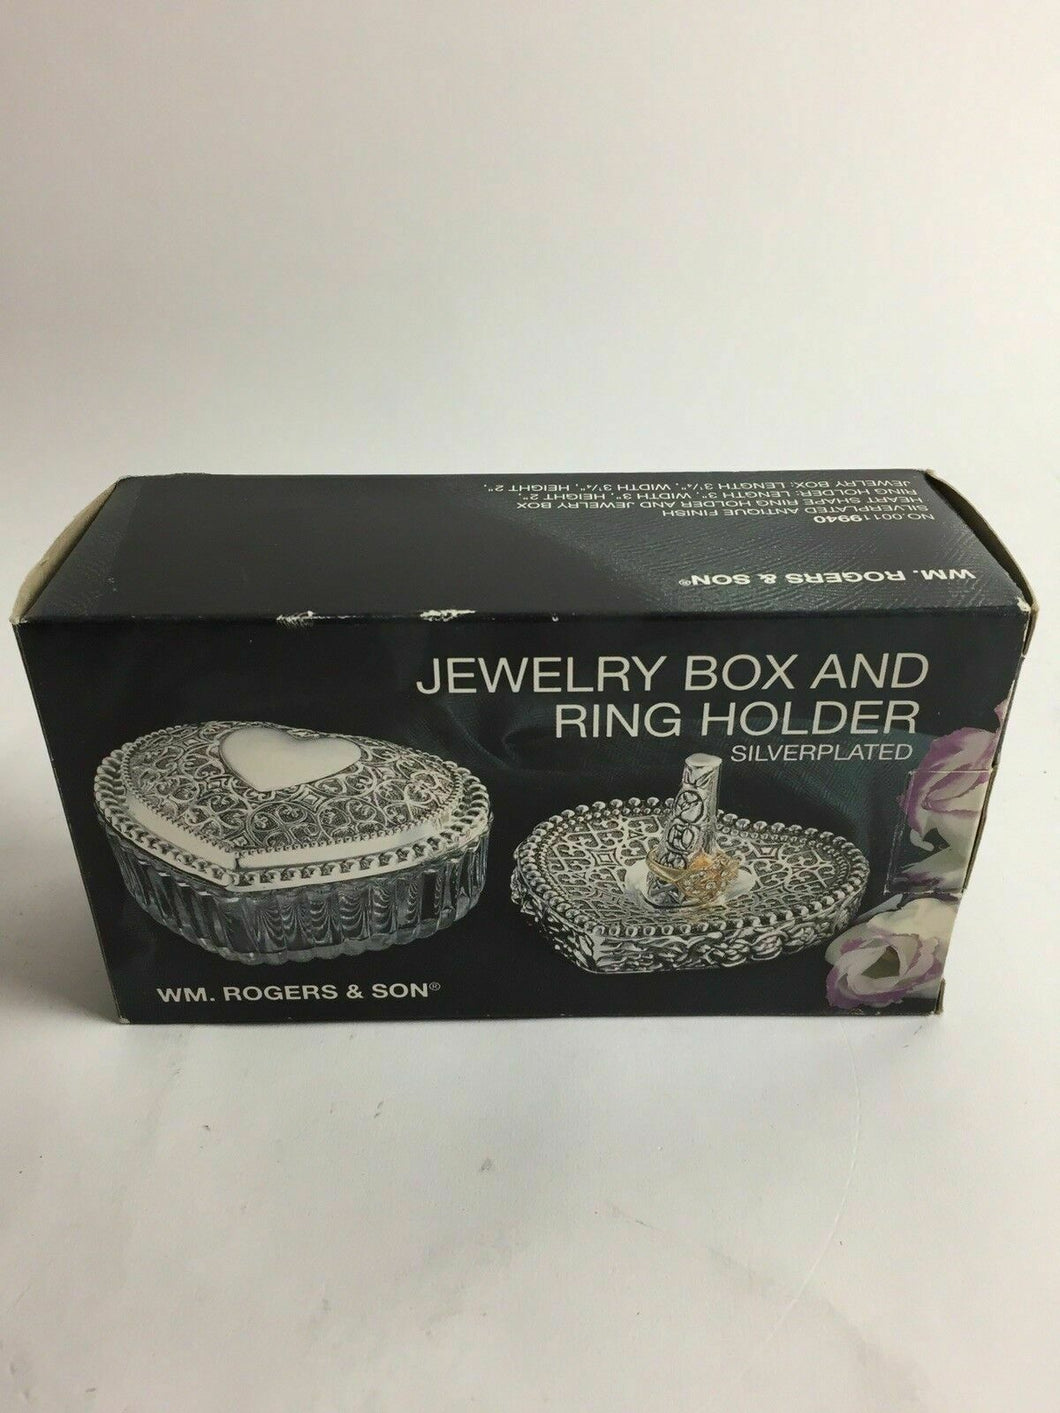 NIB WM. Rogers & Son Silverplated Jewelry Box & Ring Holders - lot 1796